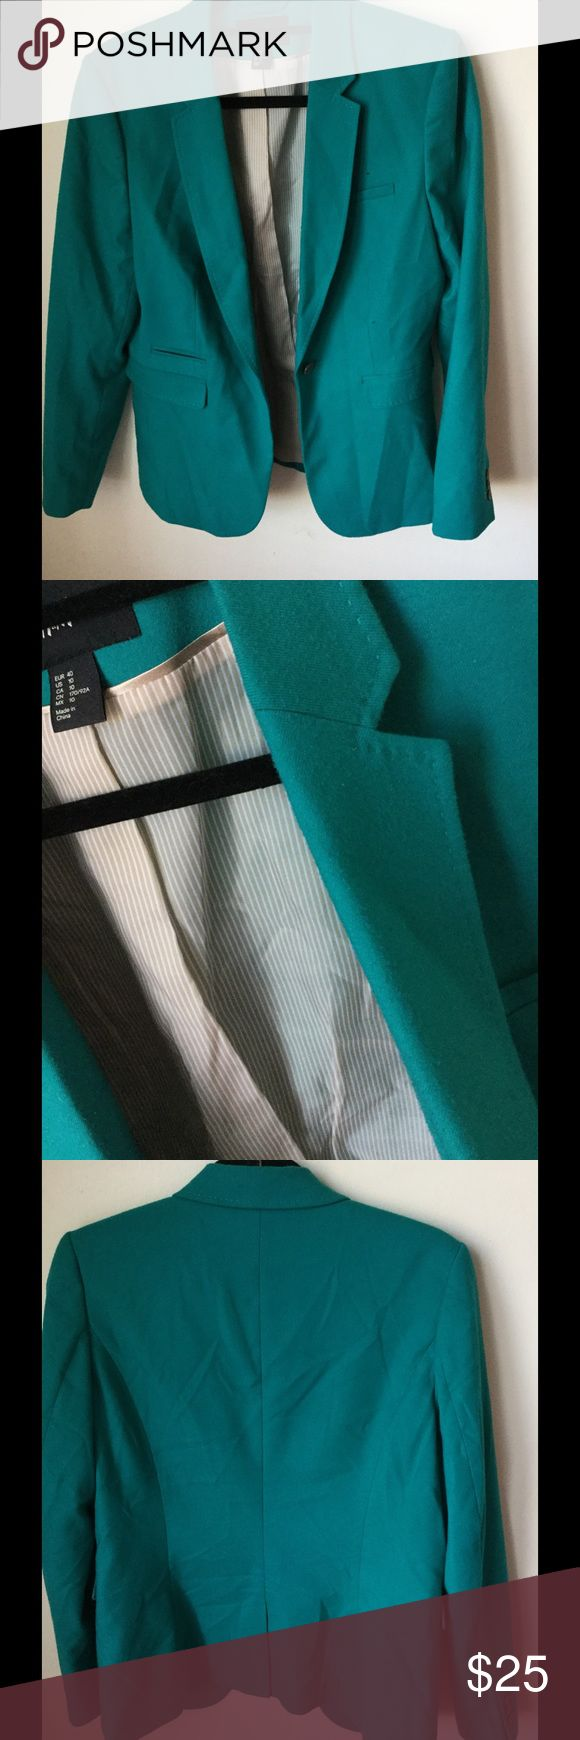 H&M turquoise blazer. H&M turquoise blazer. Size 10. 65% polyester. 33% viscose. 2%elastane. Inner lining- 100% polyester. H&M Jackets & Coats Blazers